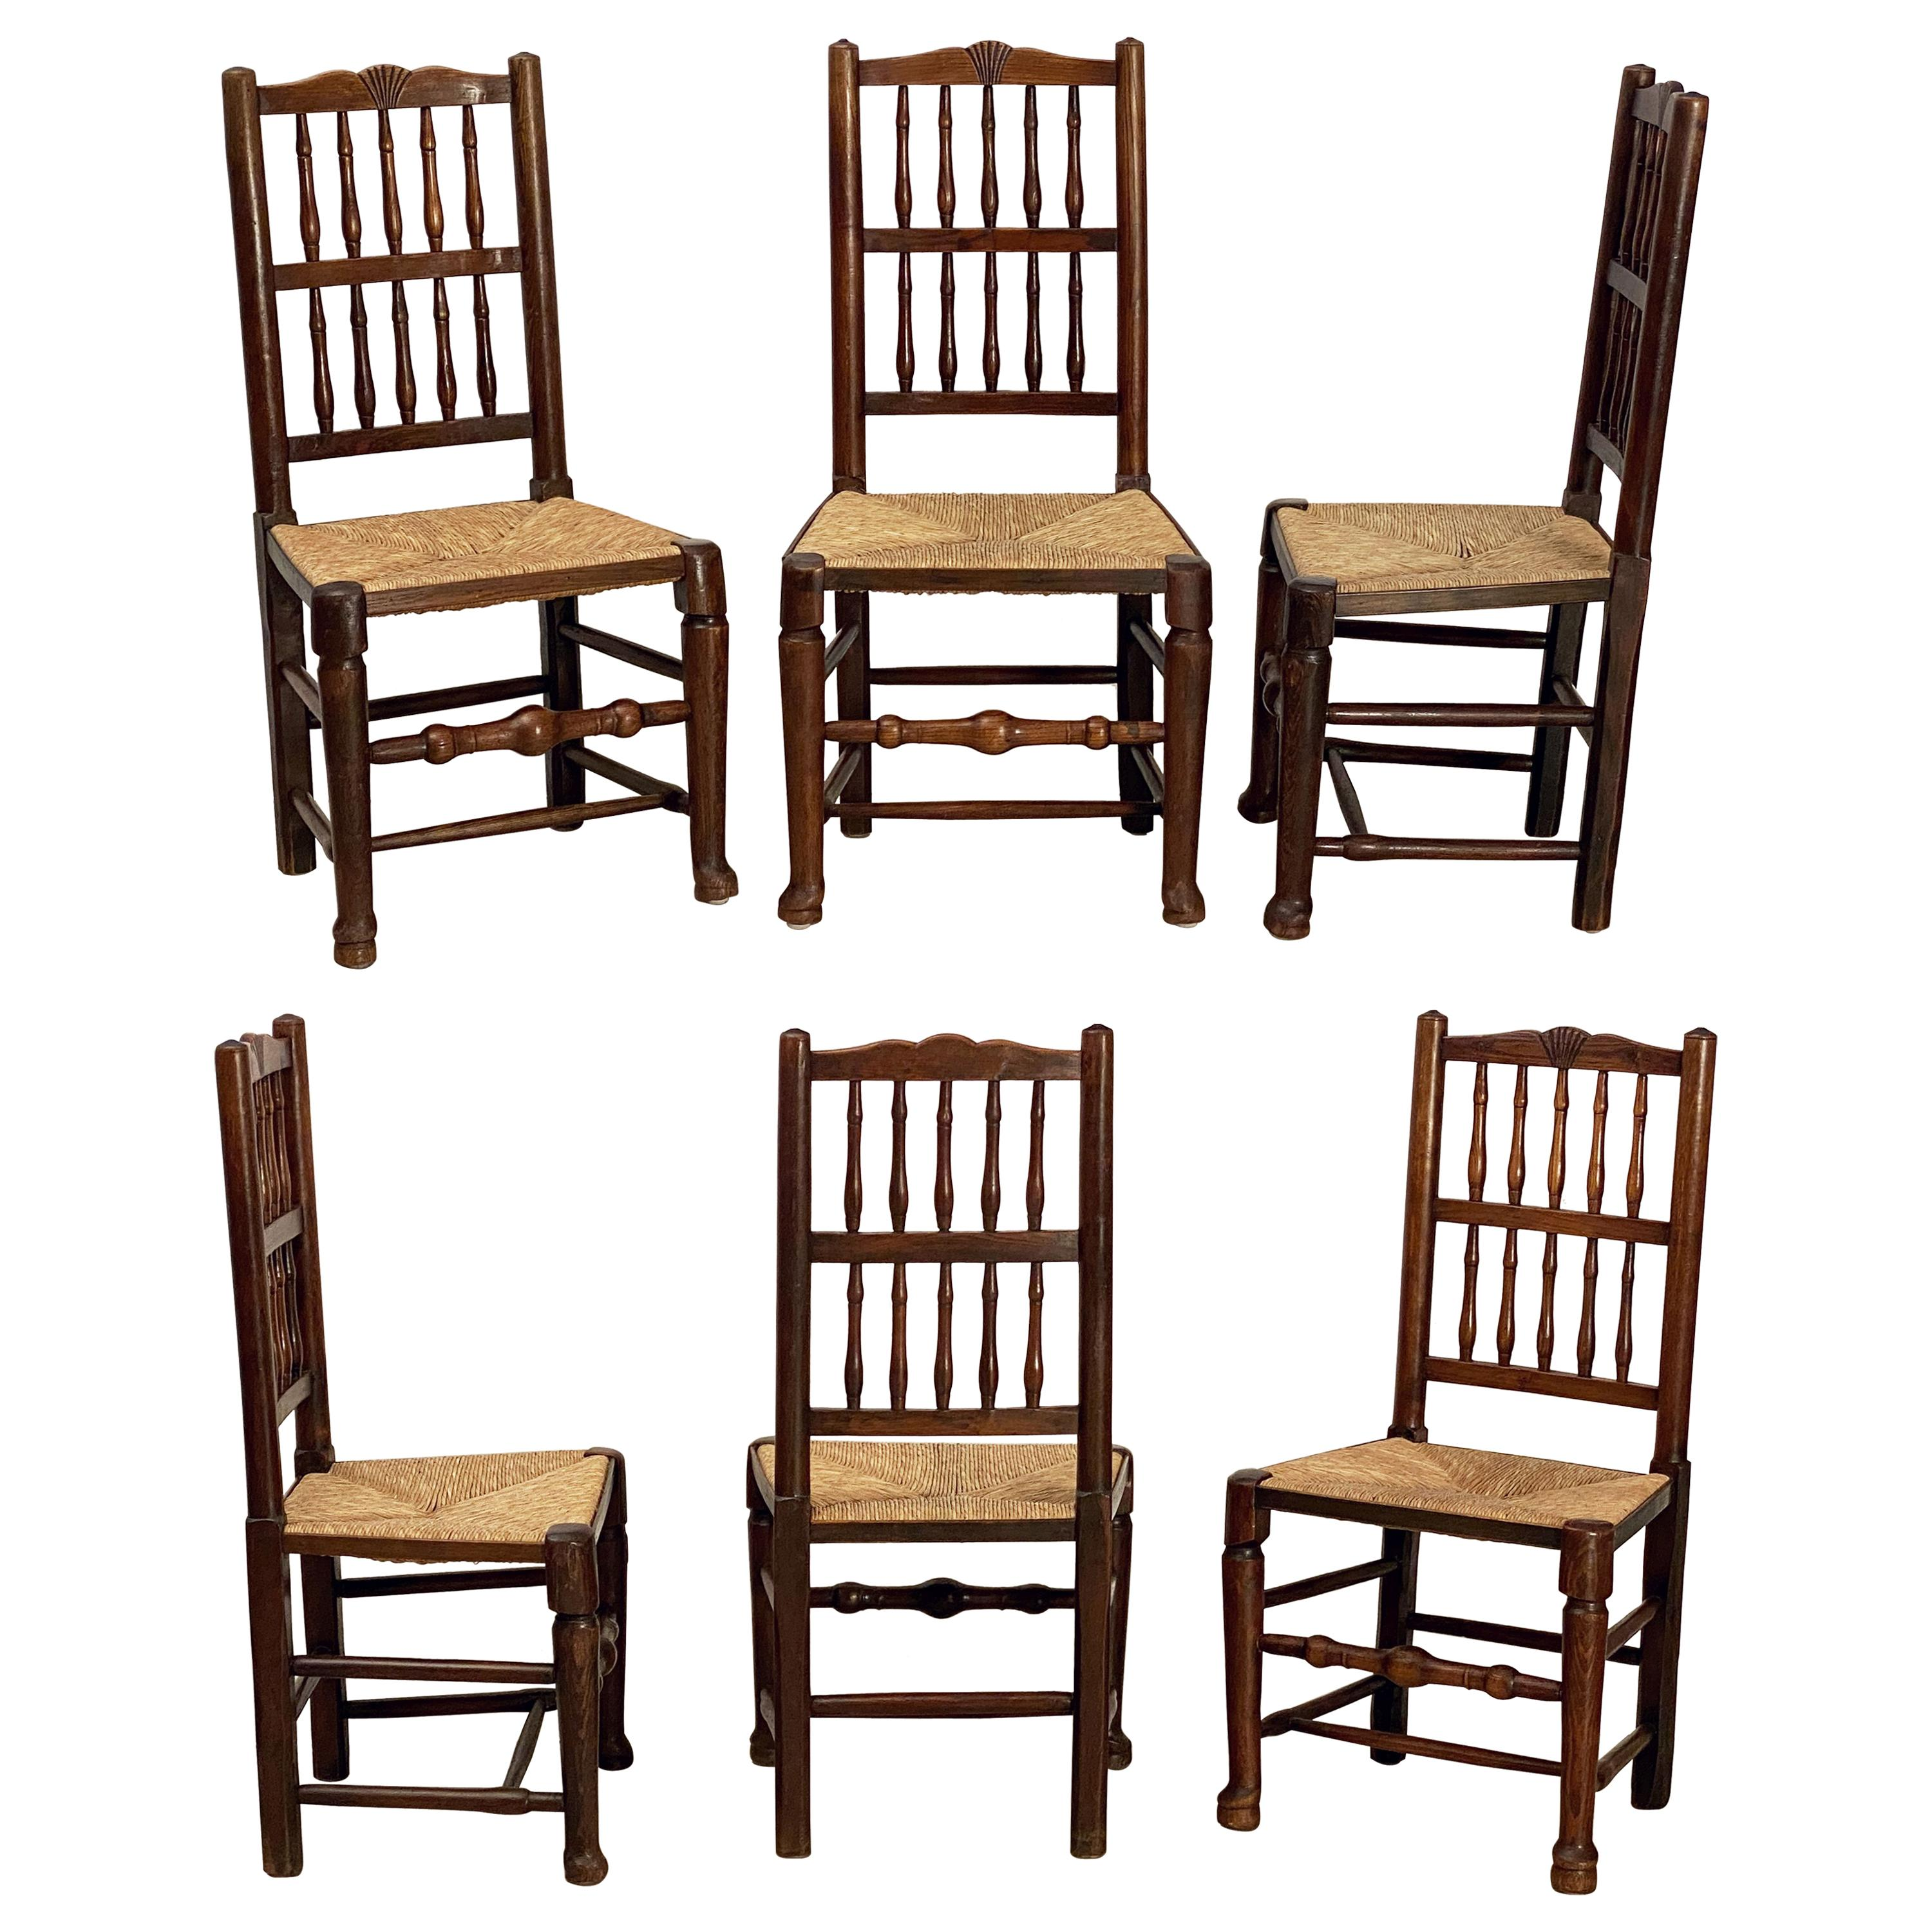 Set of Six English Oak Spindle Back Chairs with Rush Seats